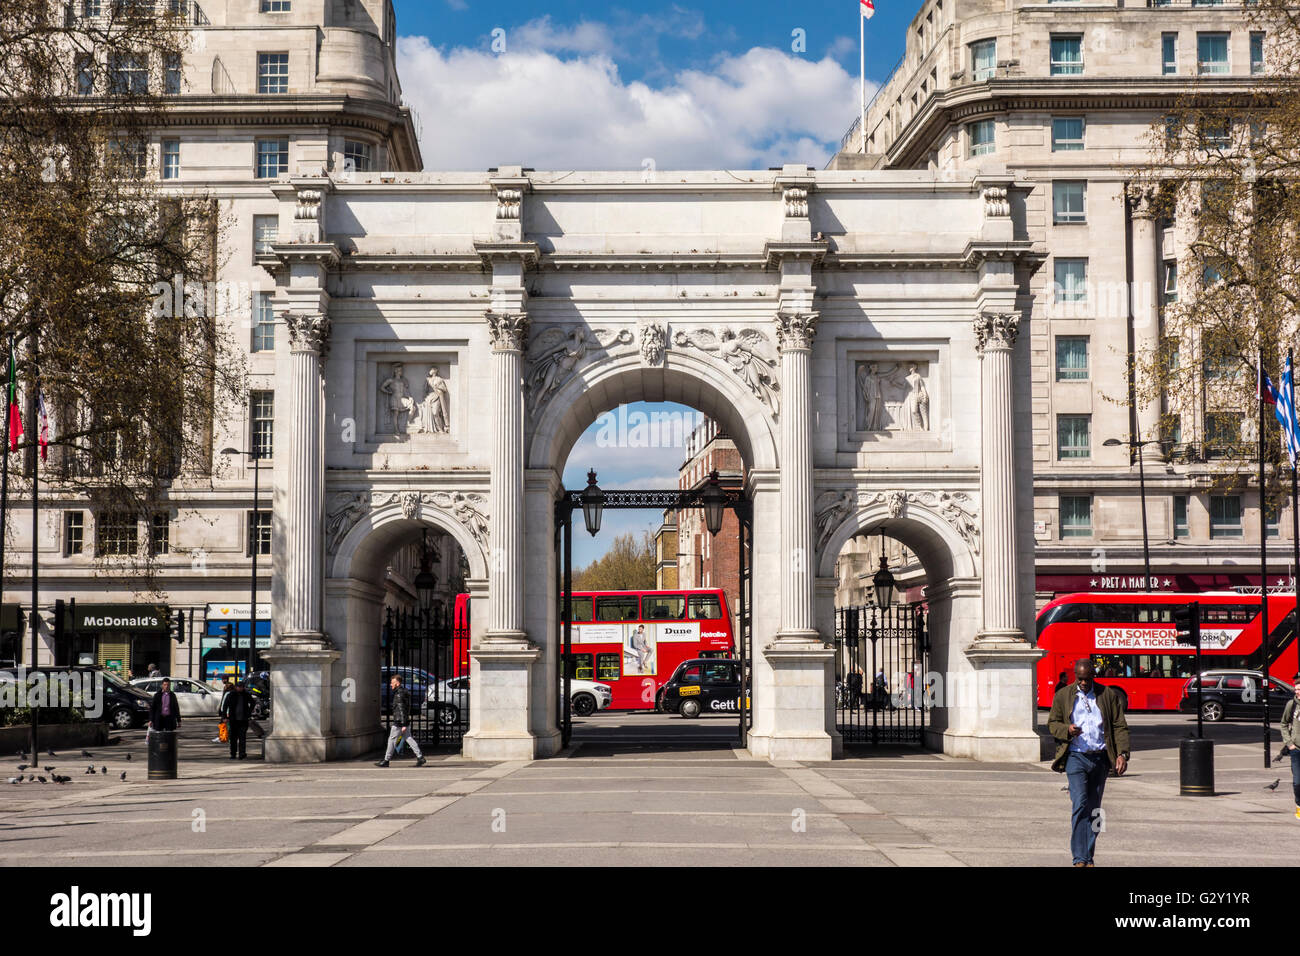 Marble Arch, London, UK - Stock Image